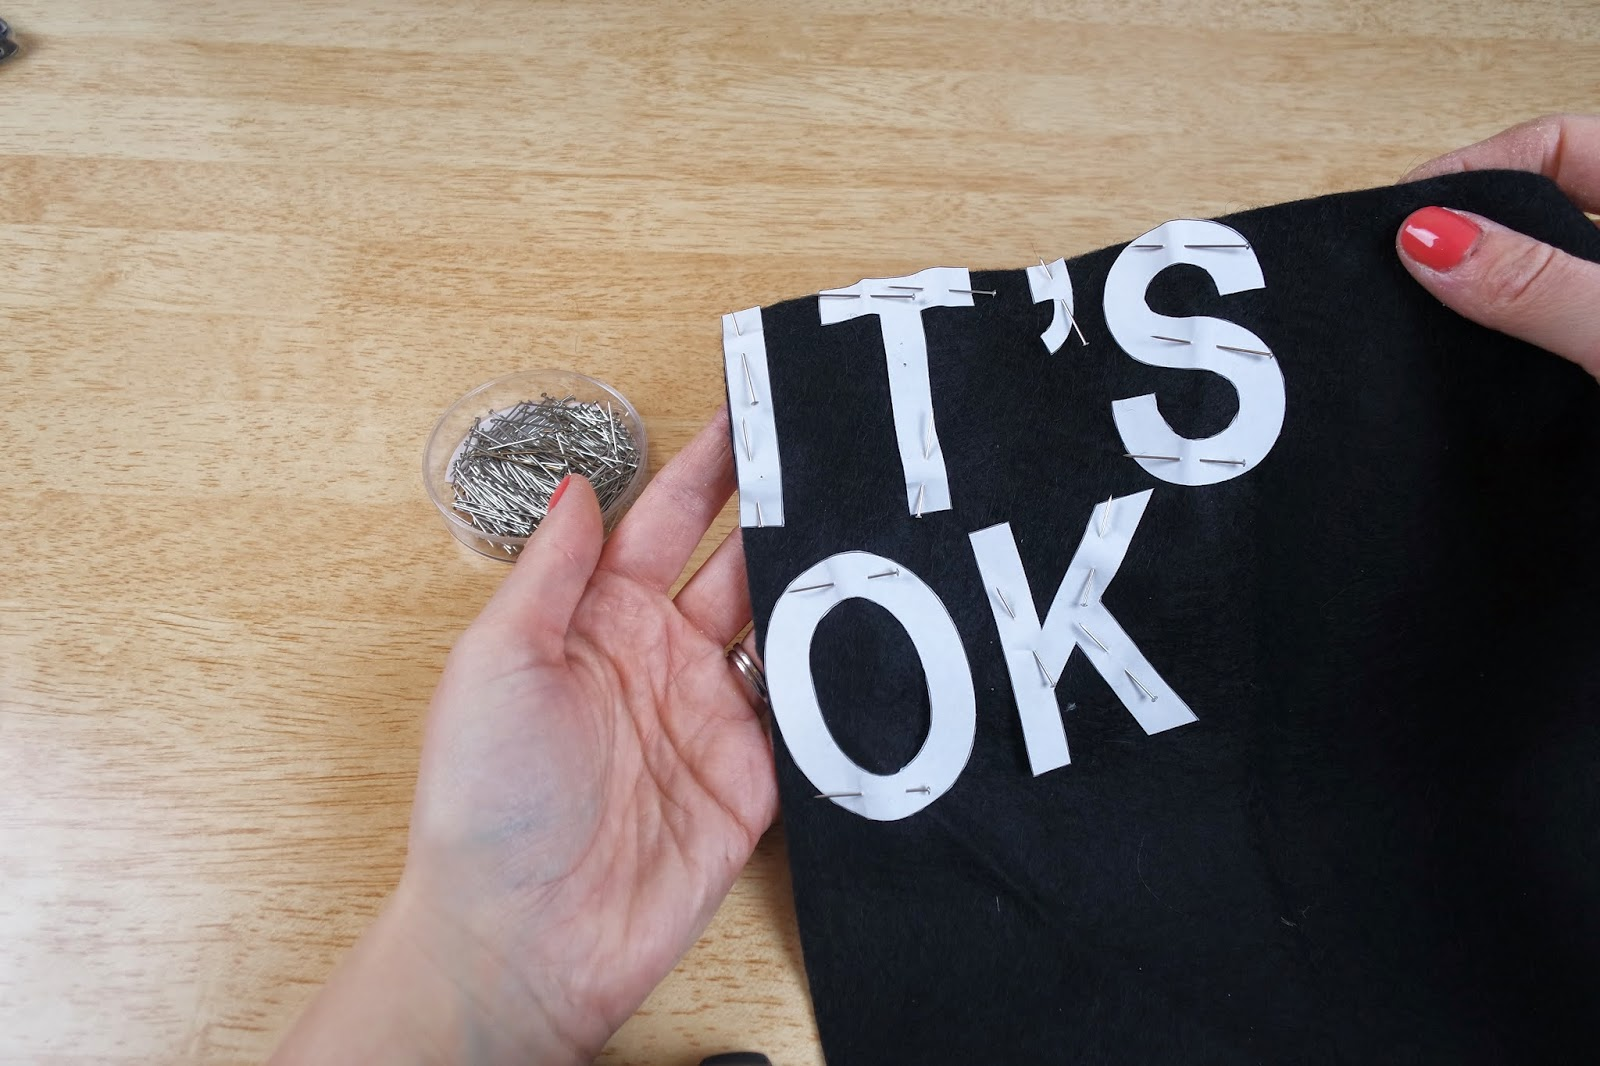 diy it's ok banner